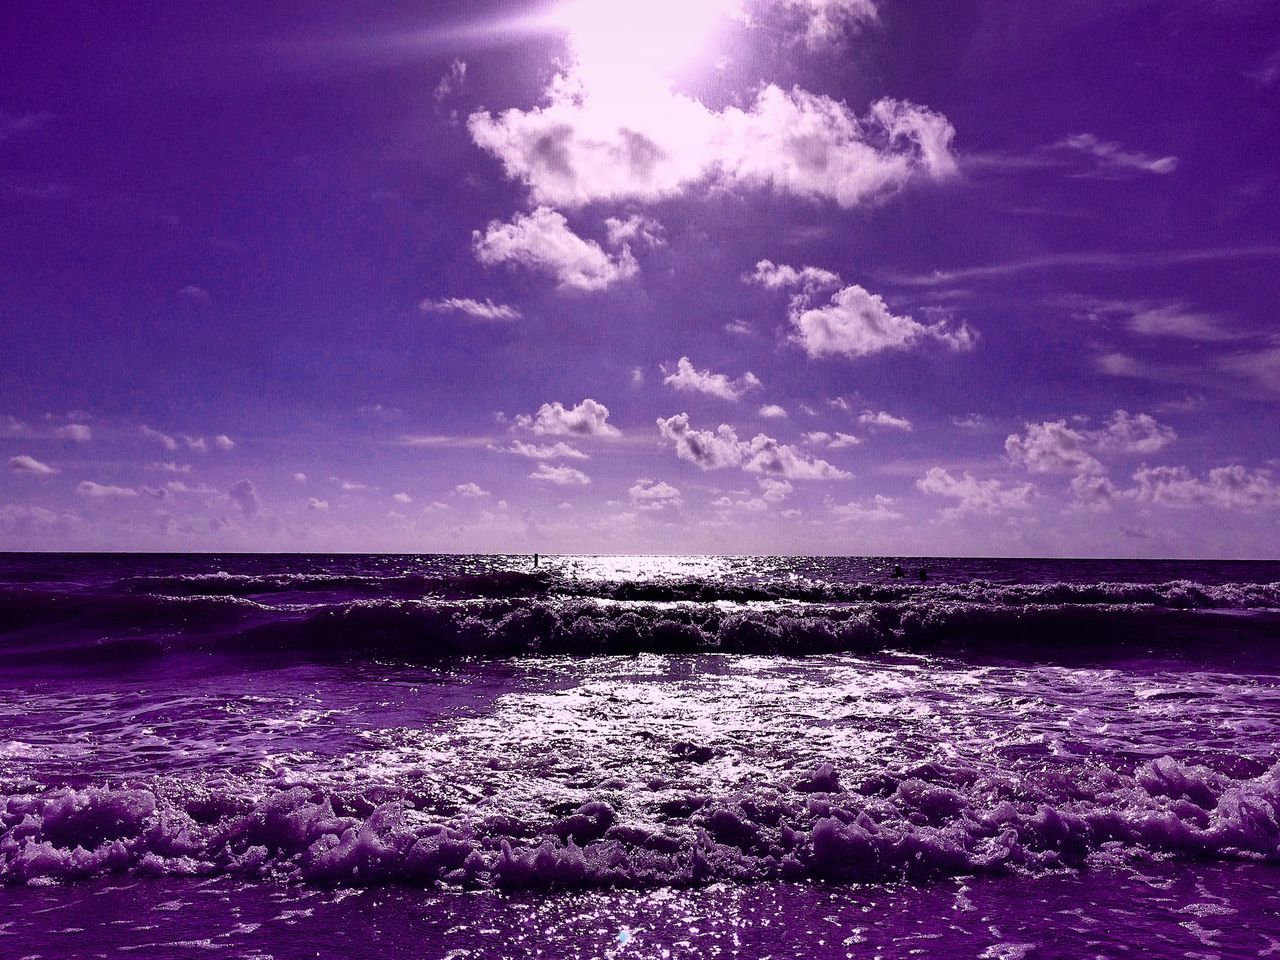 sea, beauty in nature, water, scenics, nature, tranquility, sky, tranquil scene, no people, horizon over water, outdoors, purple, day